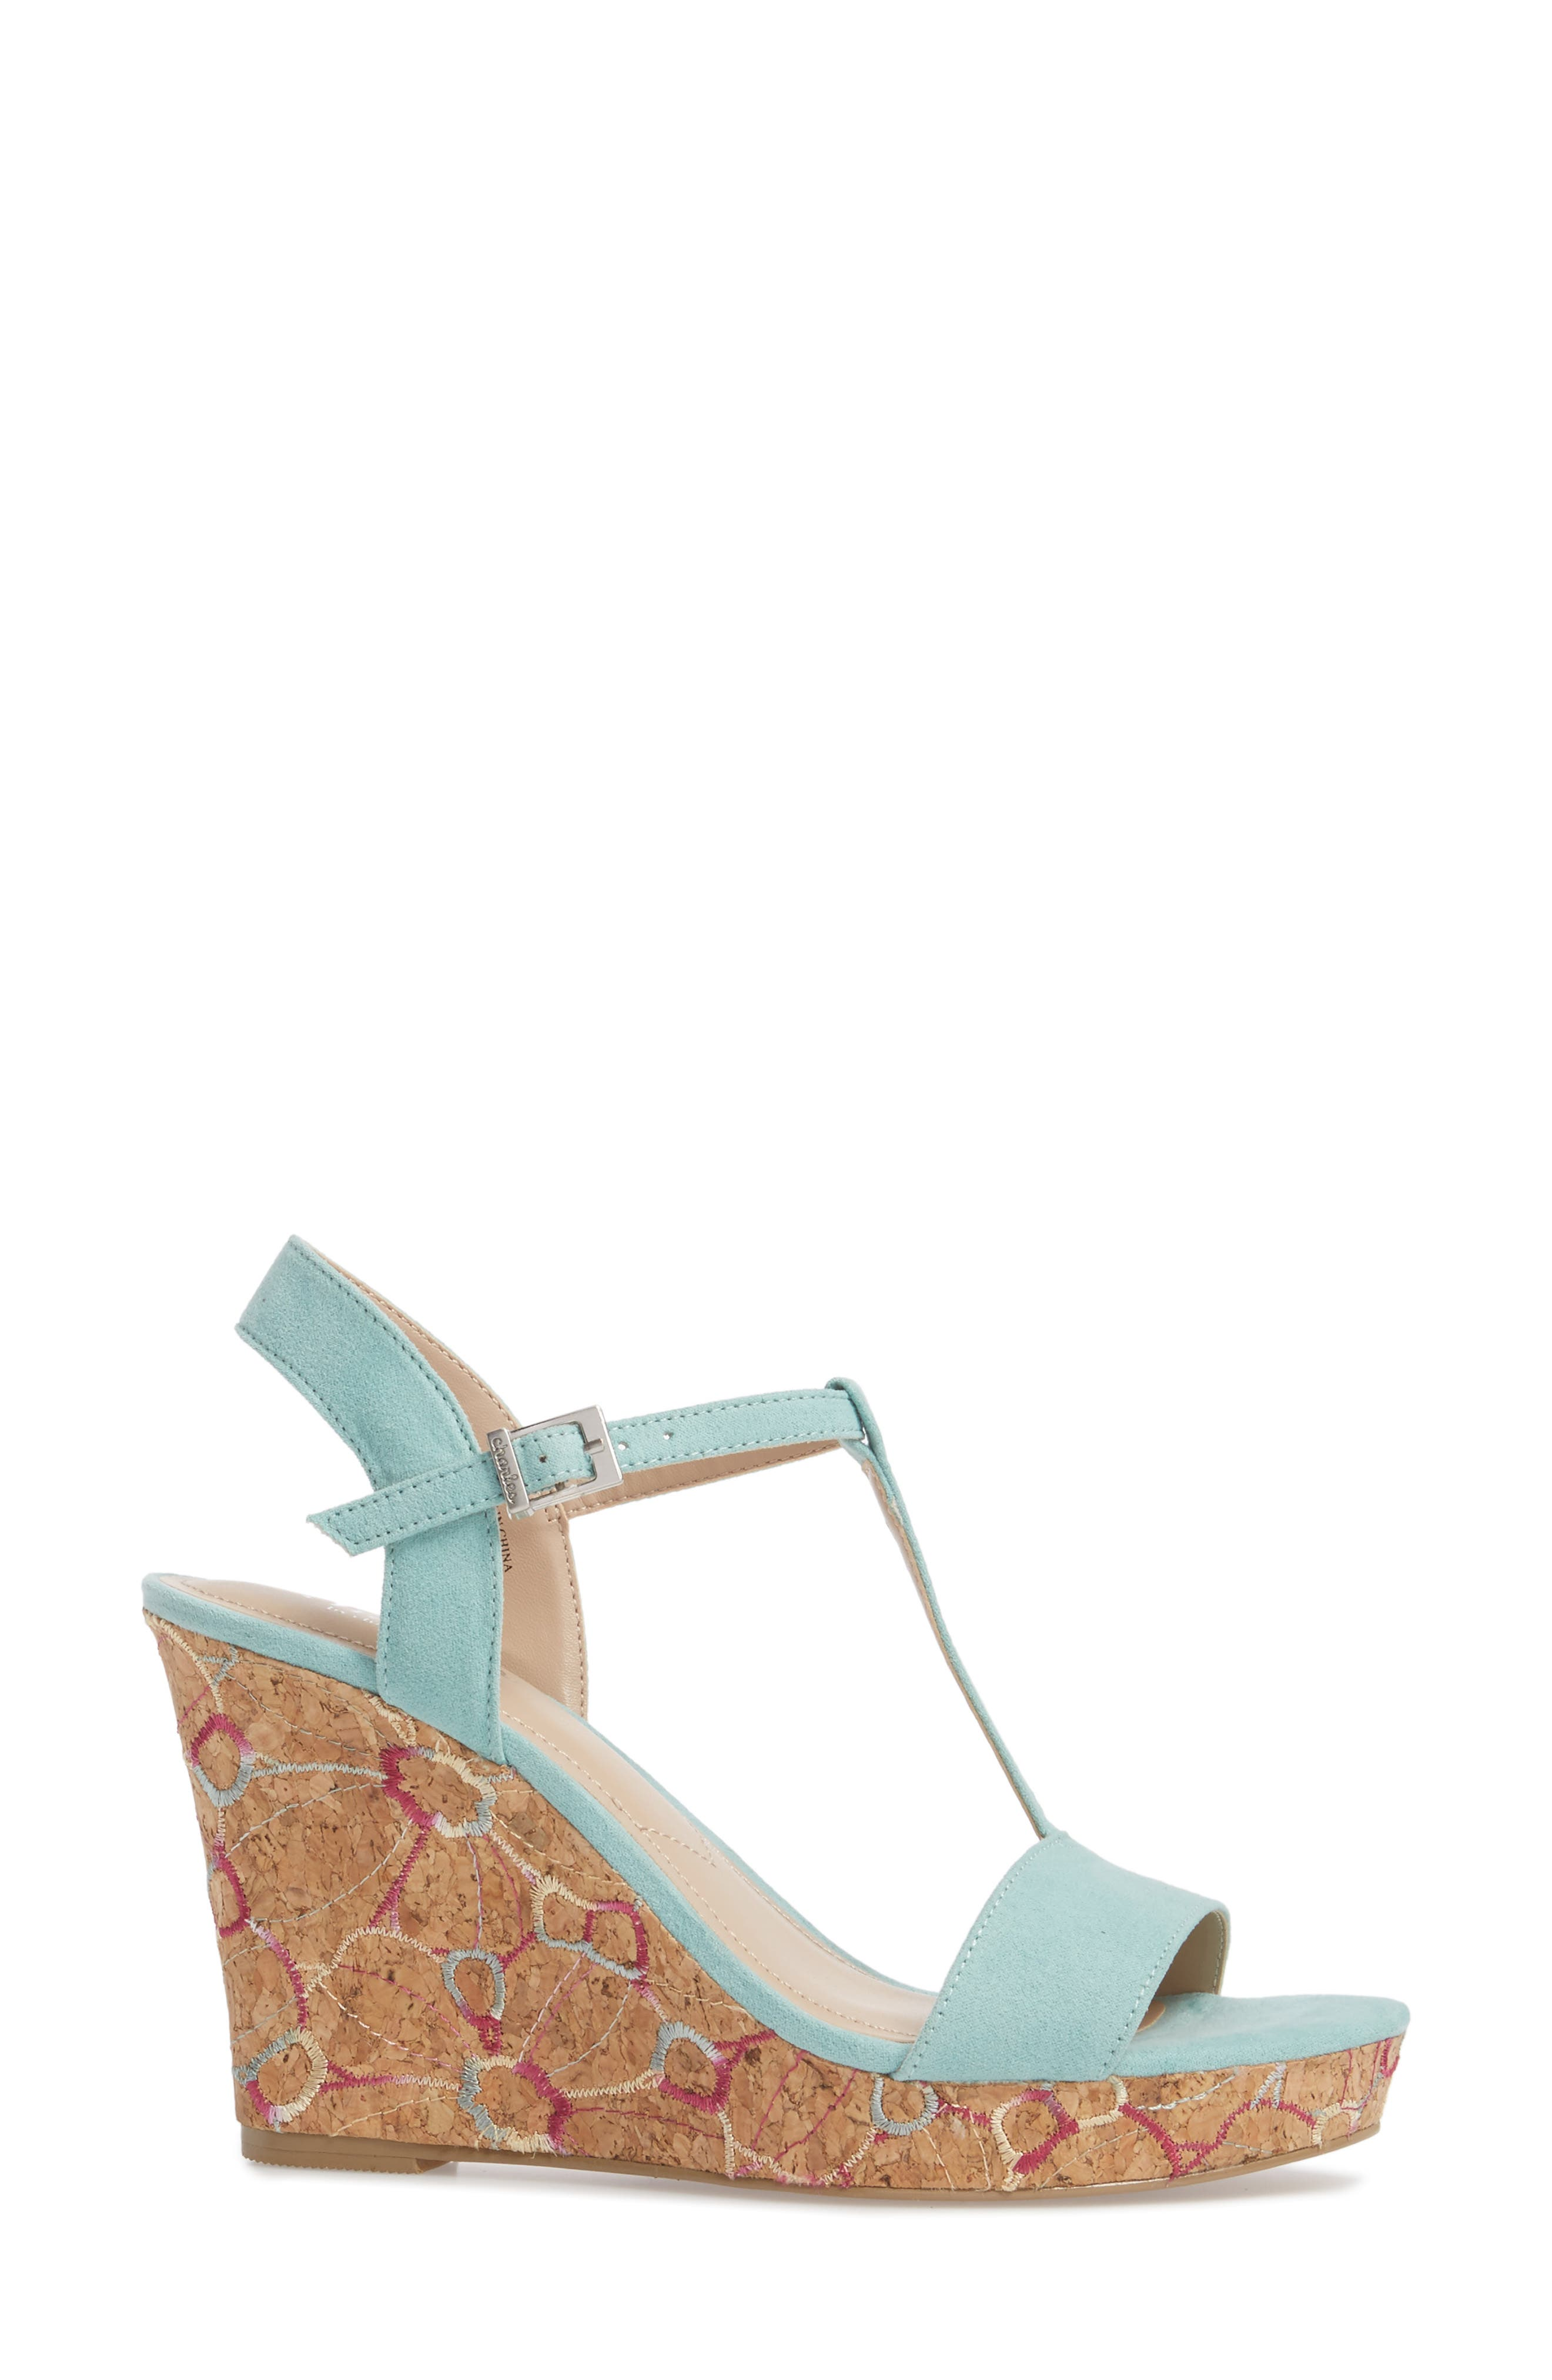 Laney Embroidered Wedge Sandal,                             Alternate thumbnail 3, color,                             MINT GREEN SUEDE